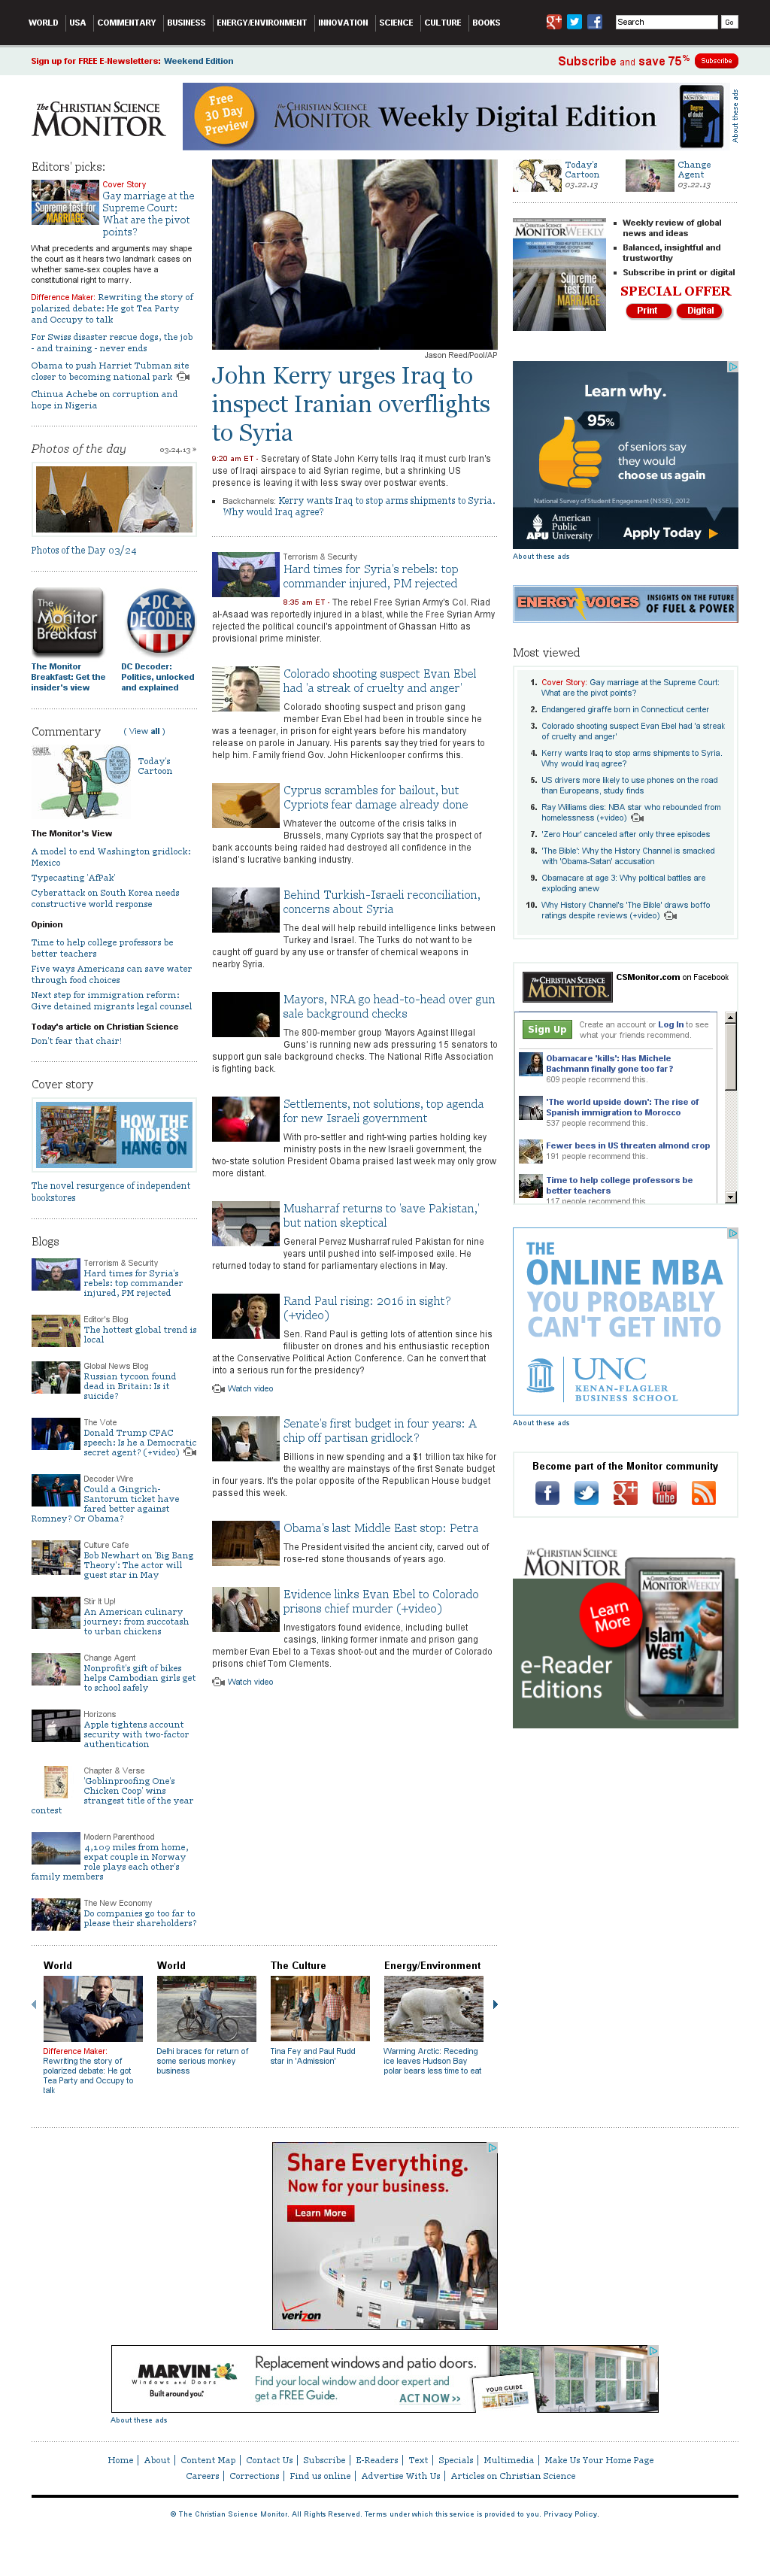 The Christian Science Monitor at Monday March 25, 2013, 2:14 p.m. UTC